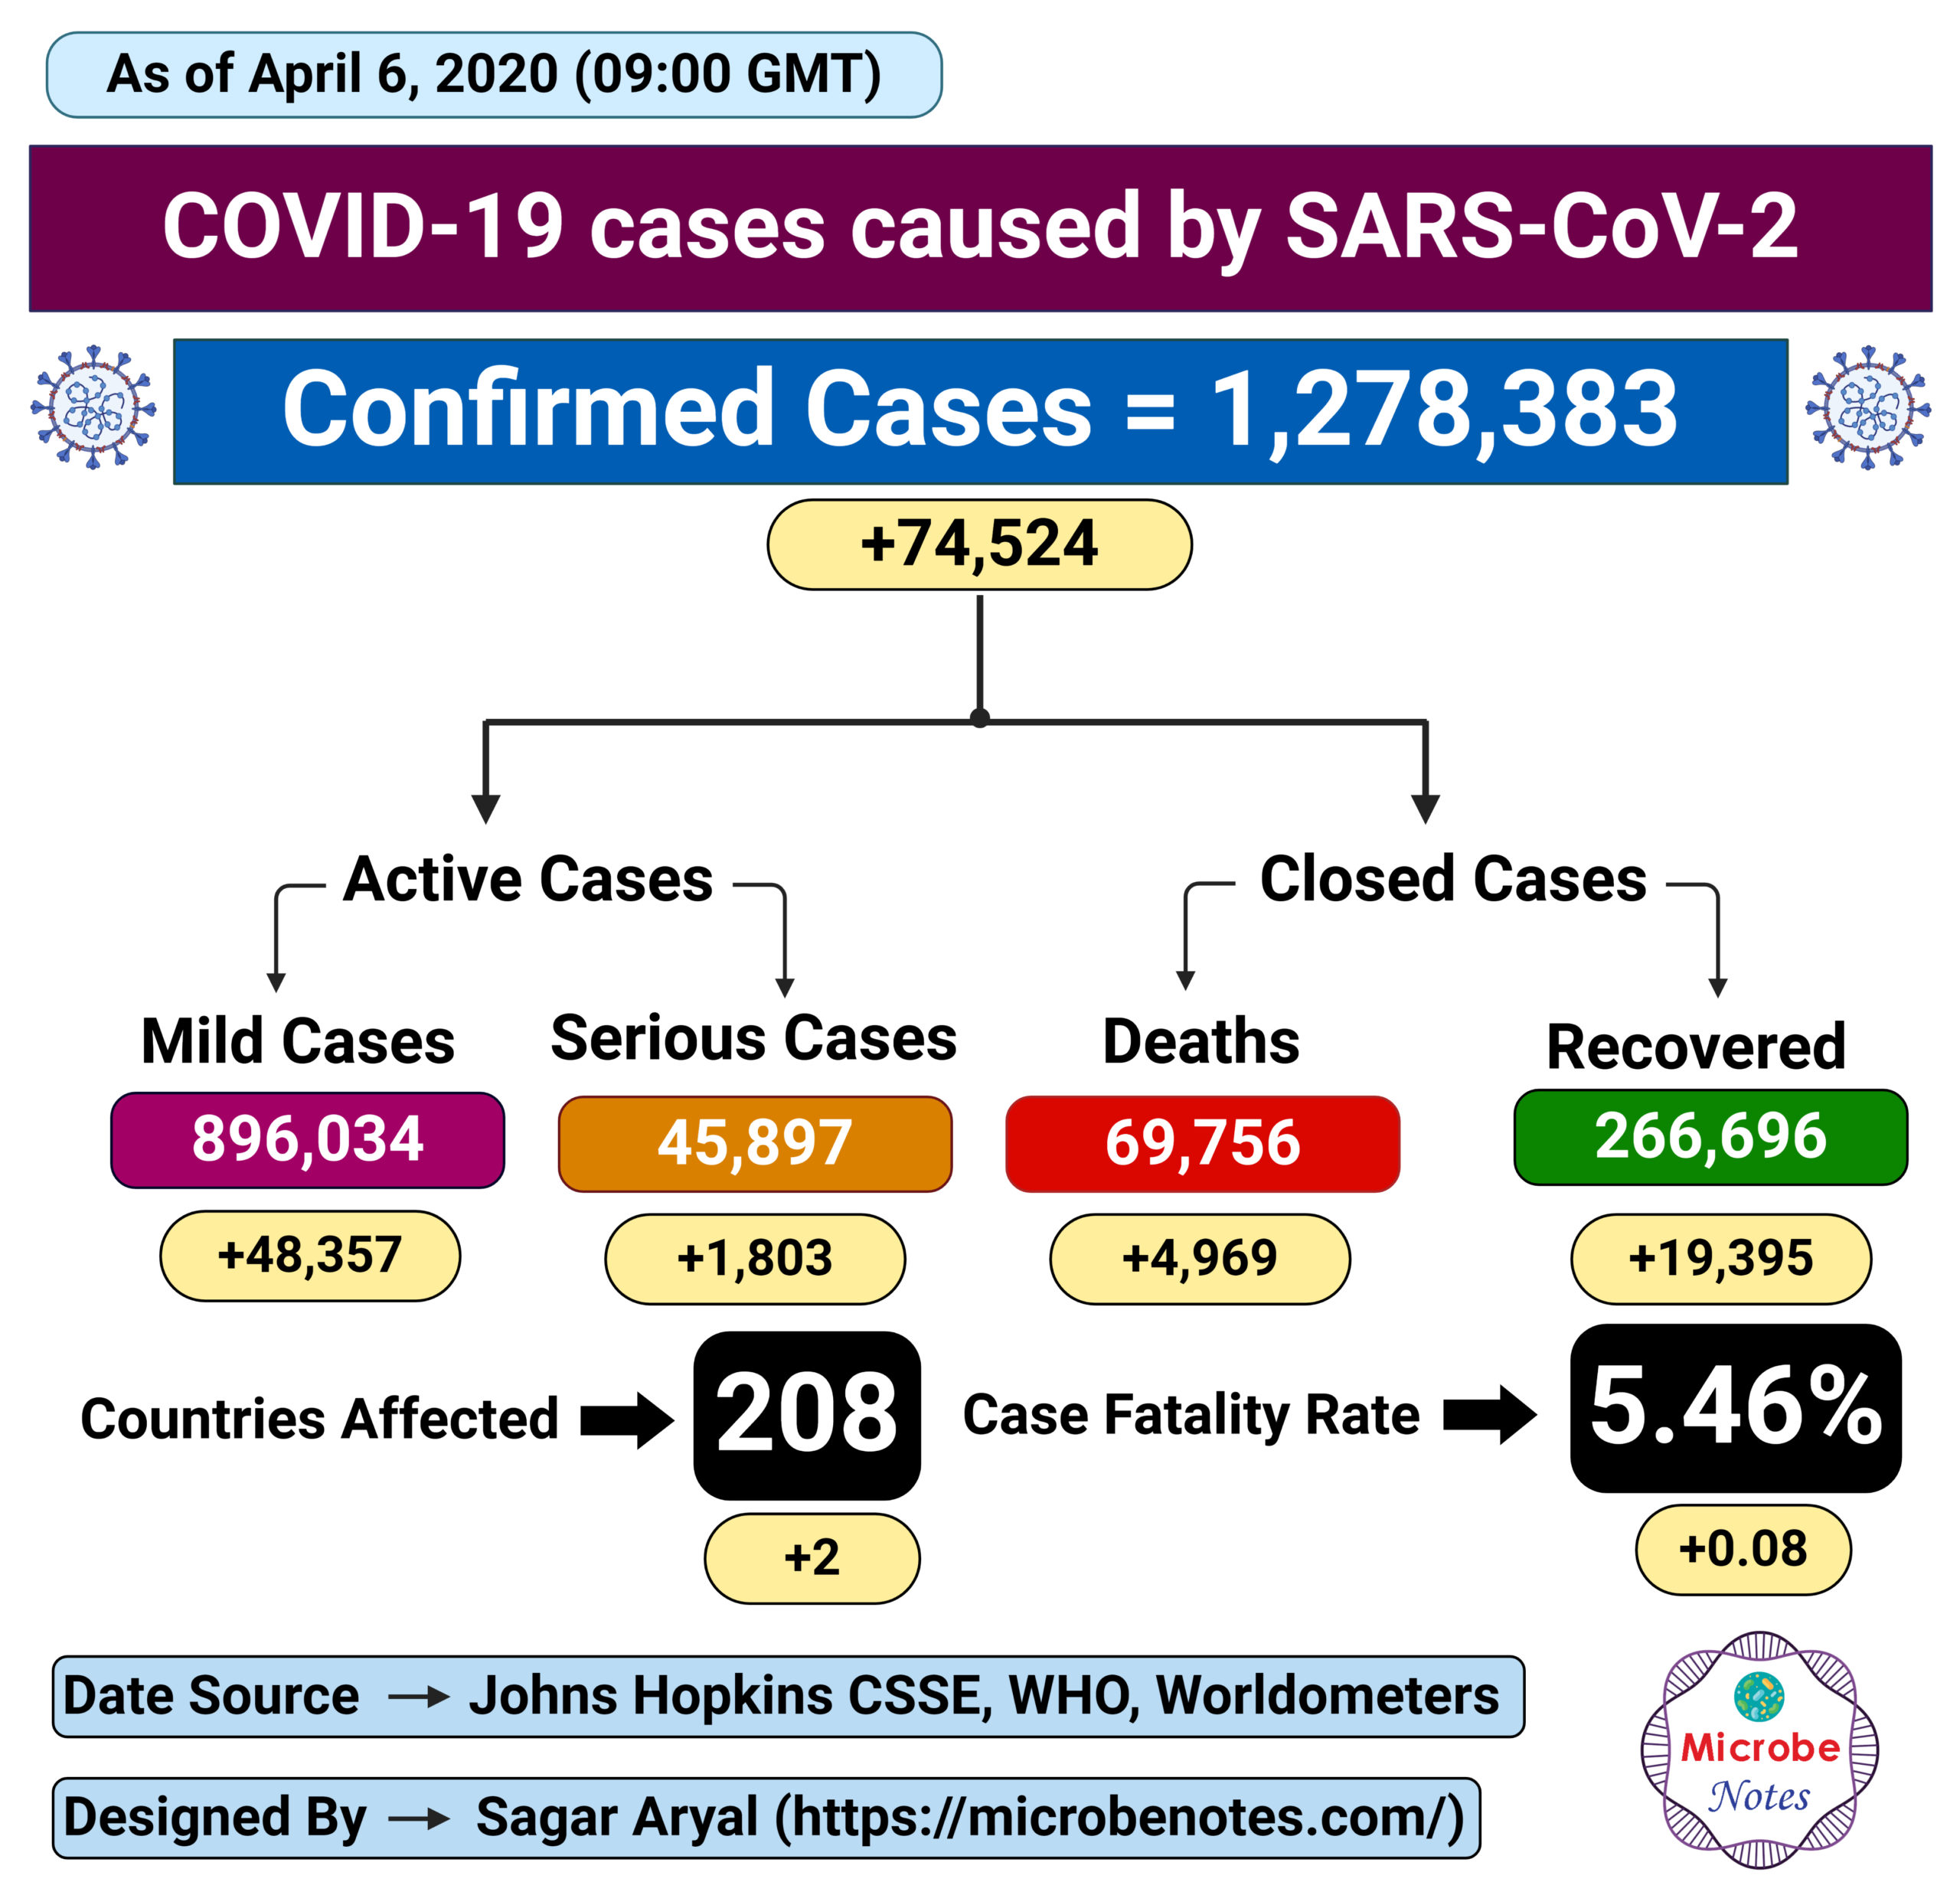 Epidemiology of COVID-19 caused by SARS-CoV-2 as of April 6, 2020